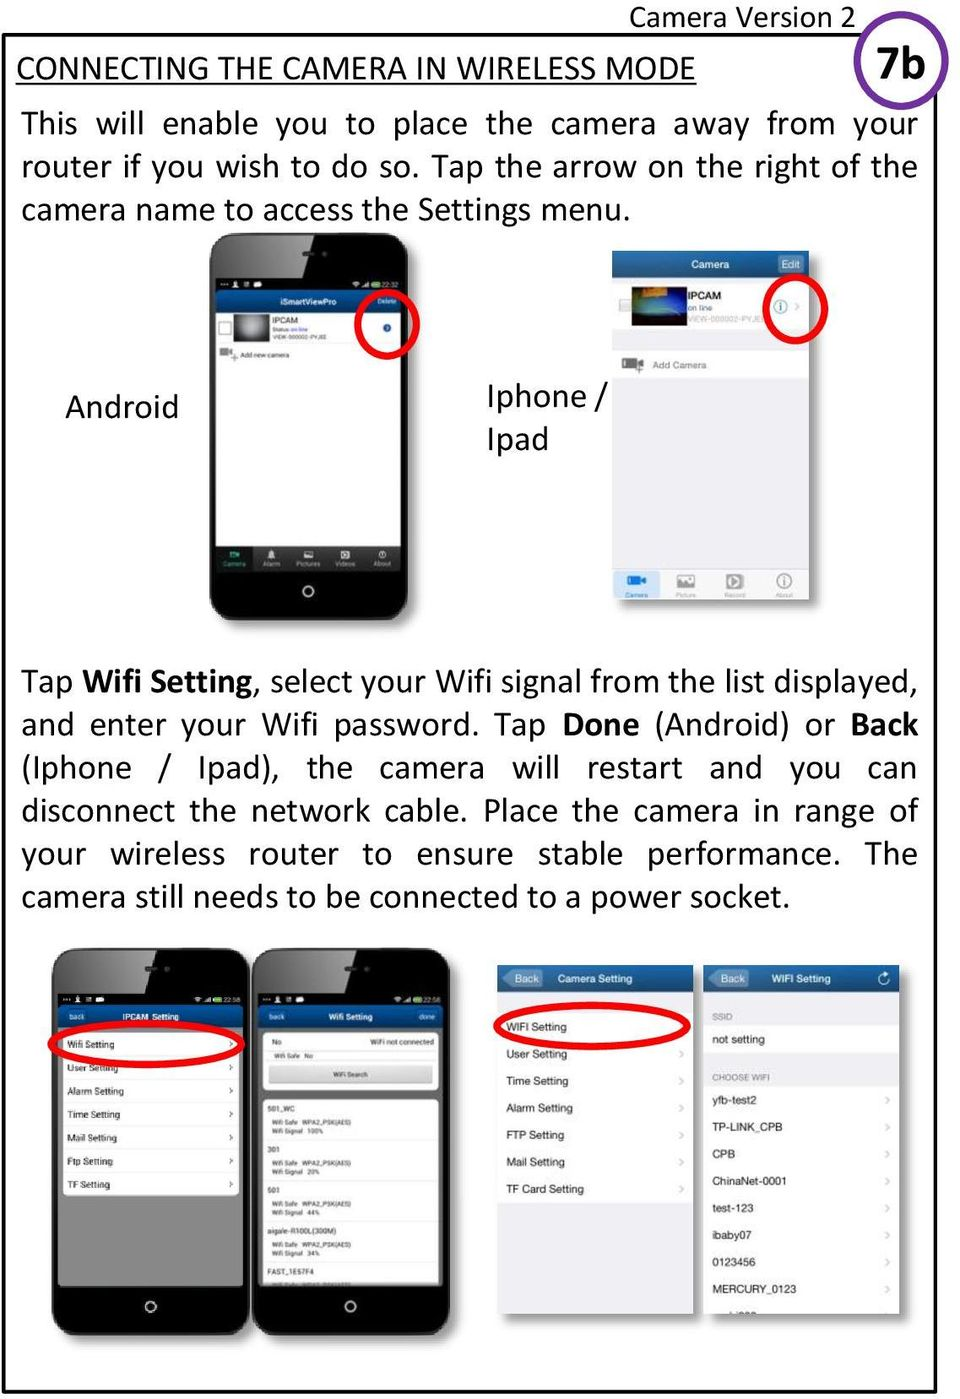 Android Iphone / Ipad Tap Wifi Setting, select your Wifi signal from the list displayed, and enter your Wifi password.